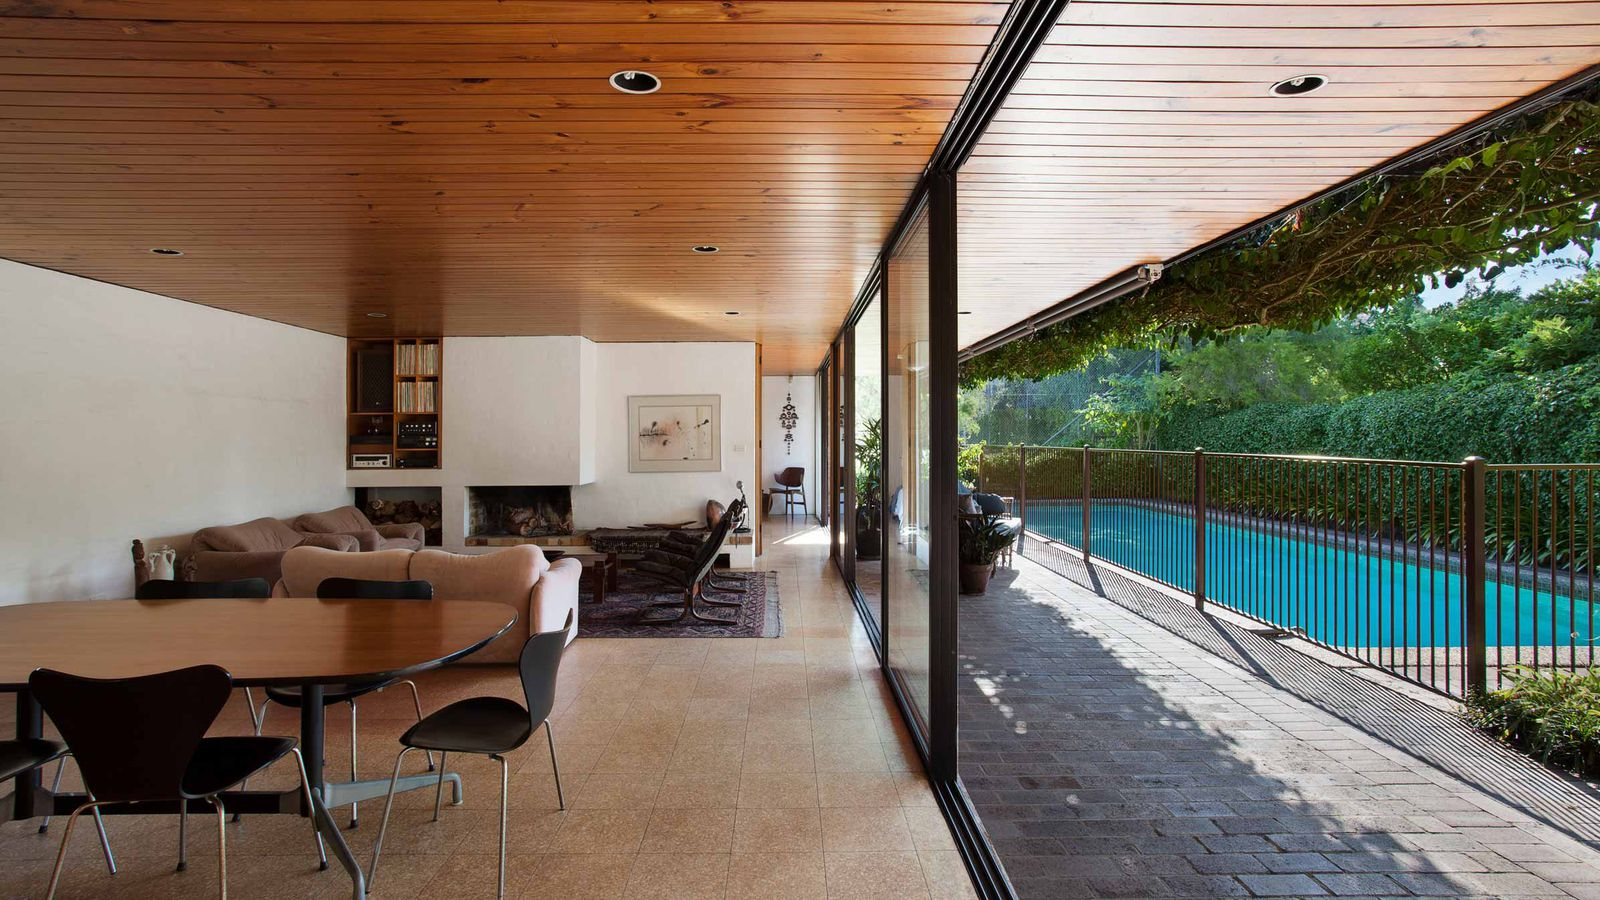 39 70s gem by sydney opera house architect on market for the for Modern 70s house